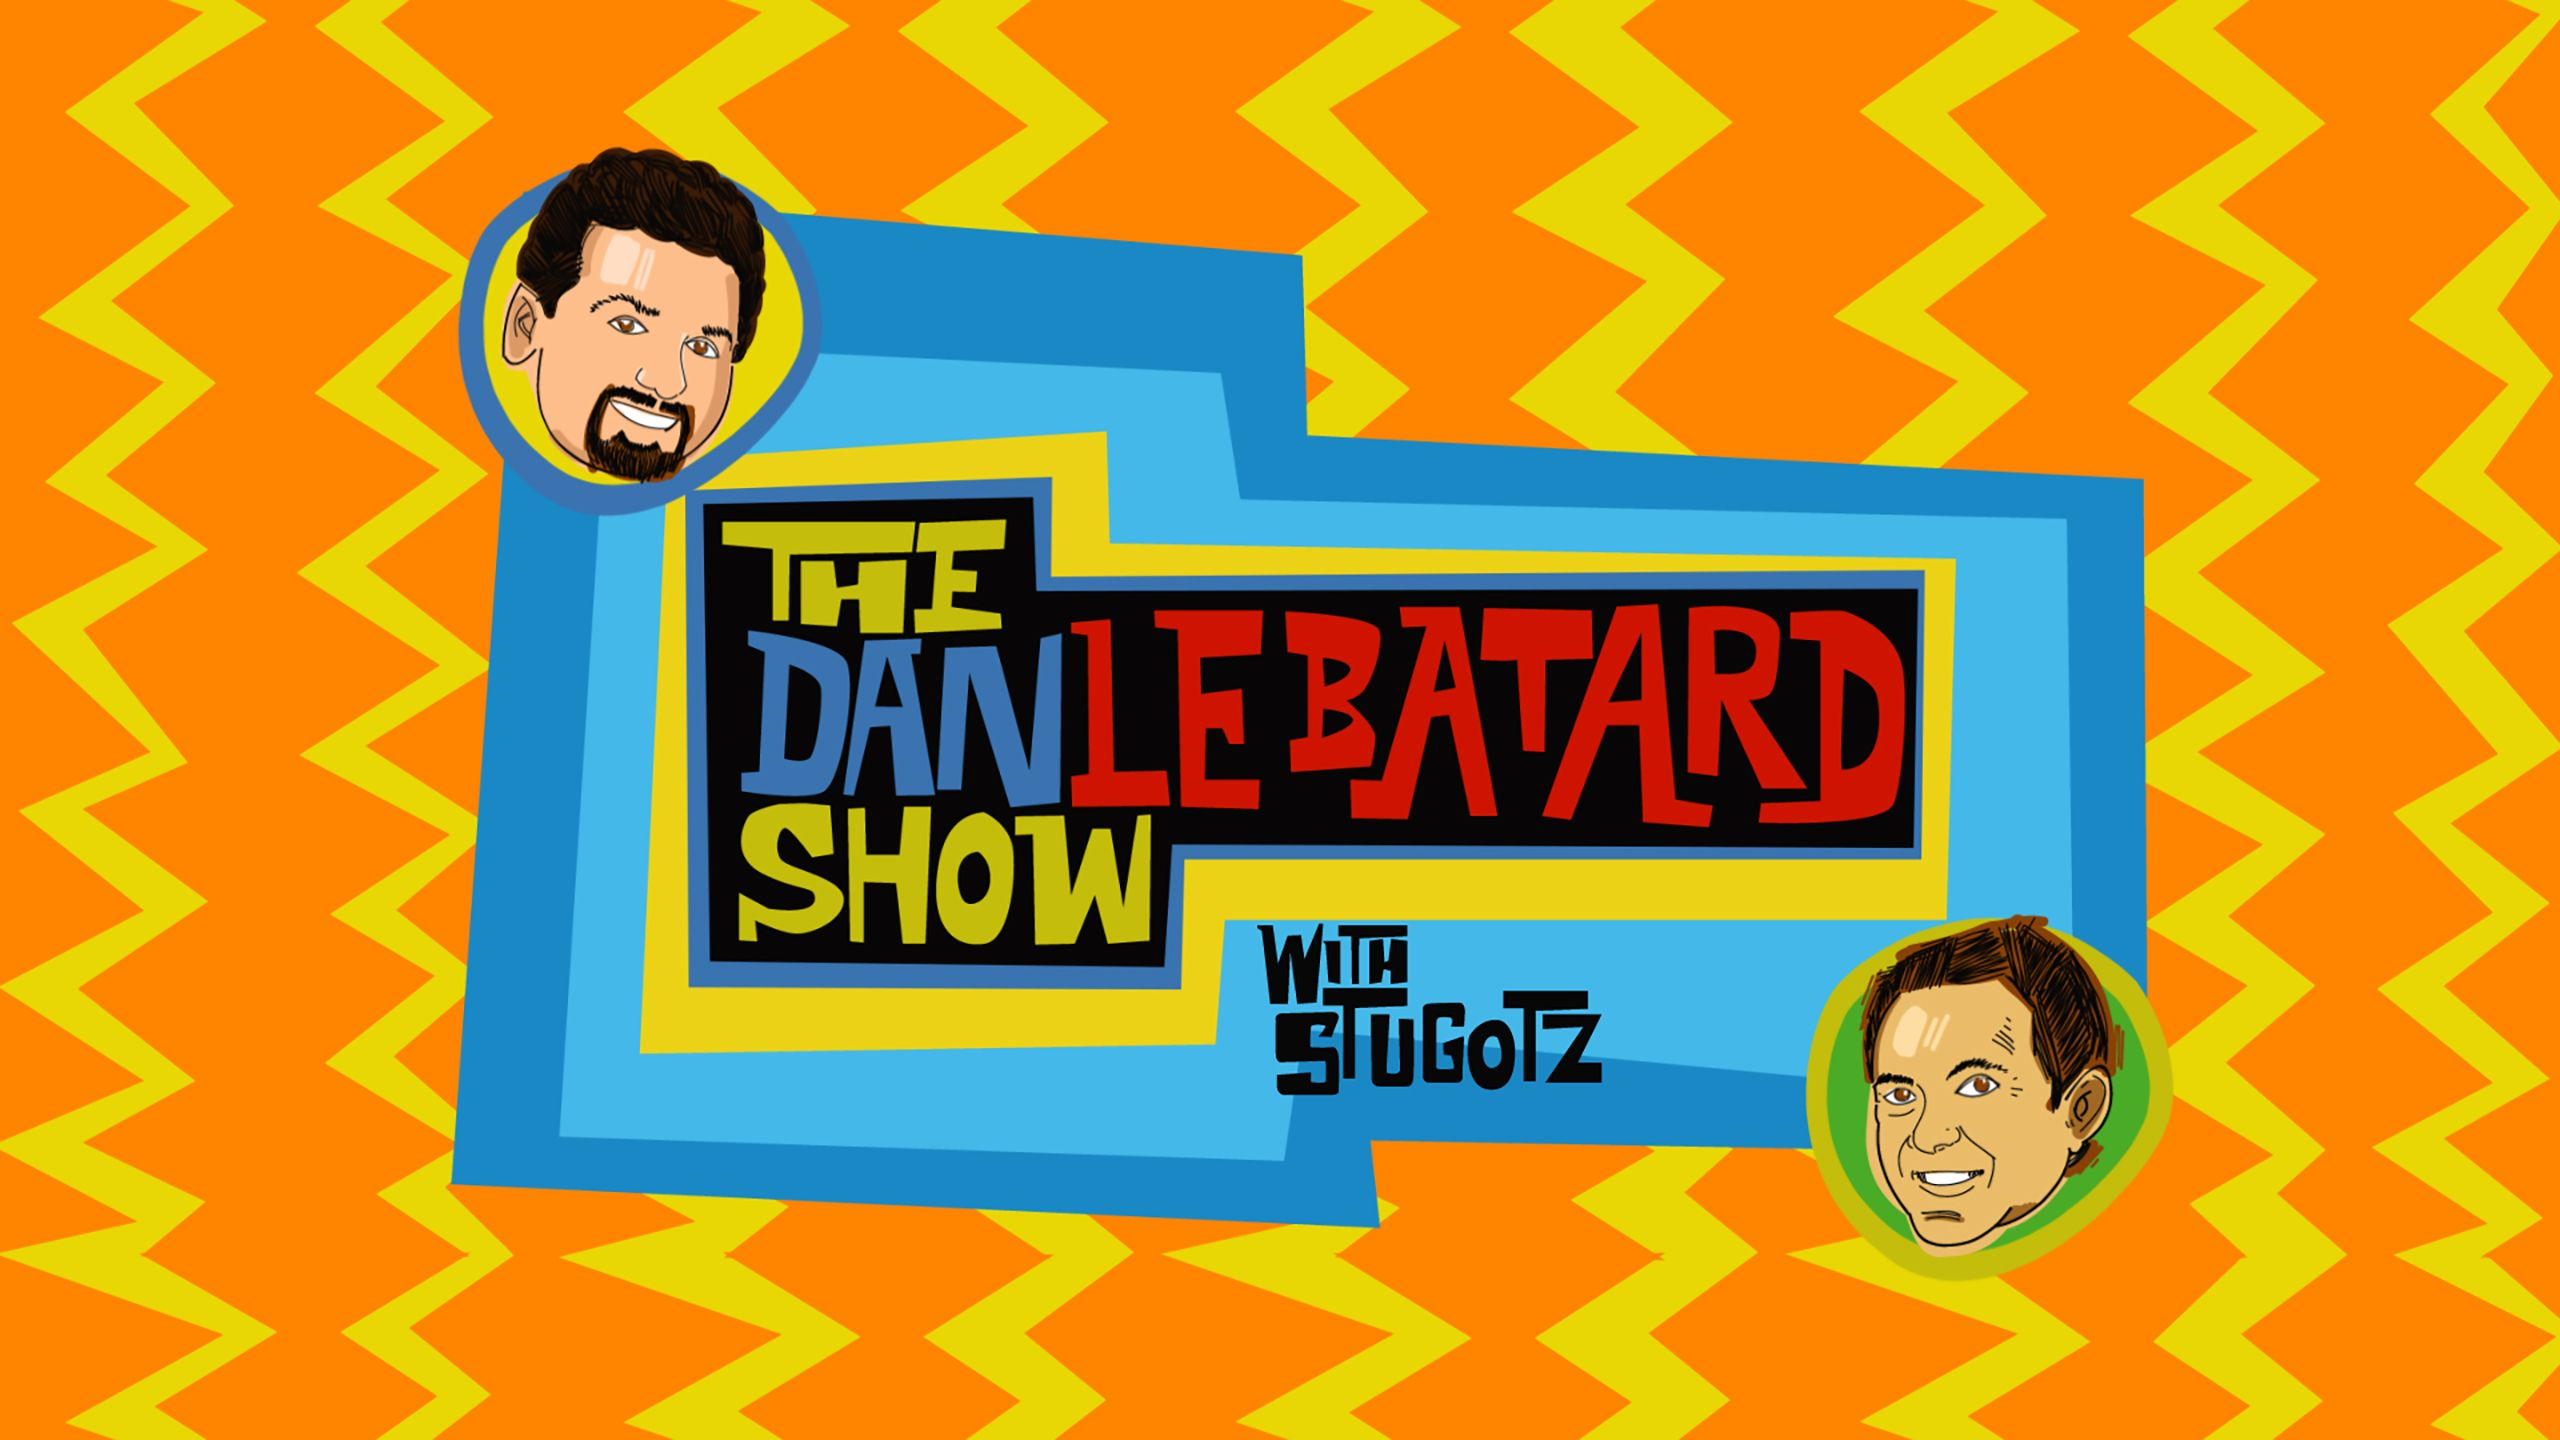 Mon, 10/23 - The Dan Le Batard Show with Stugotz Presented by Progressive